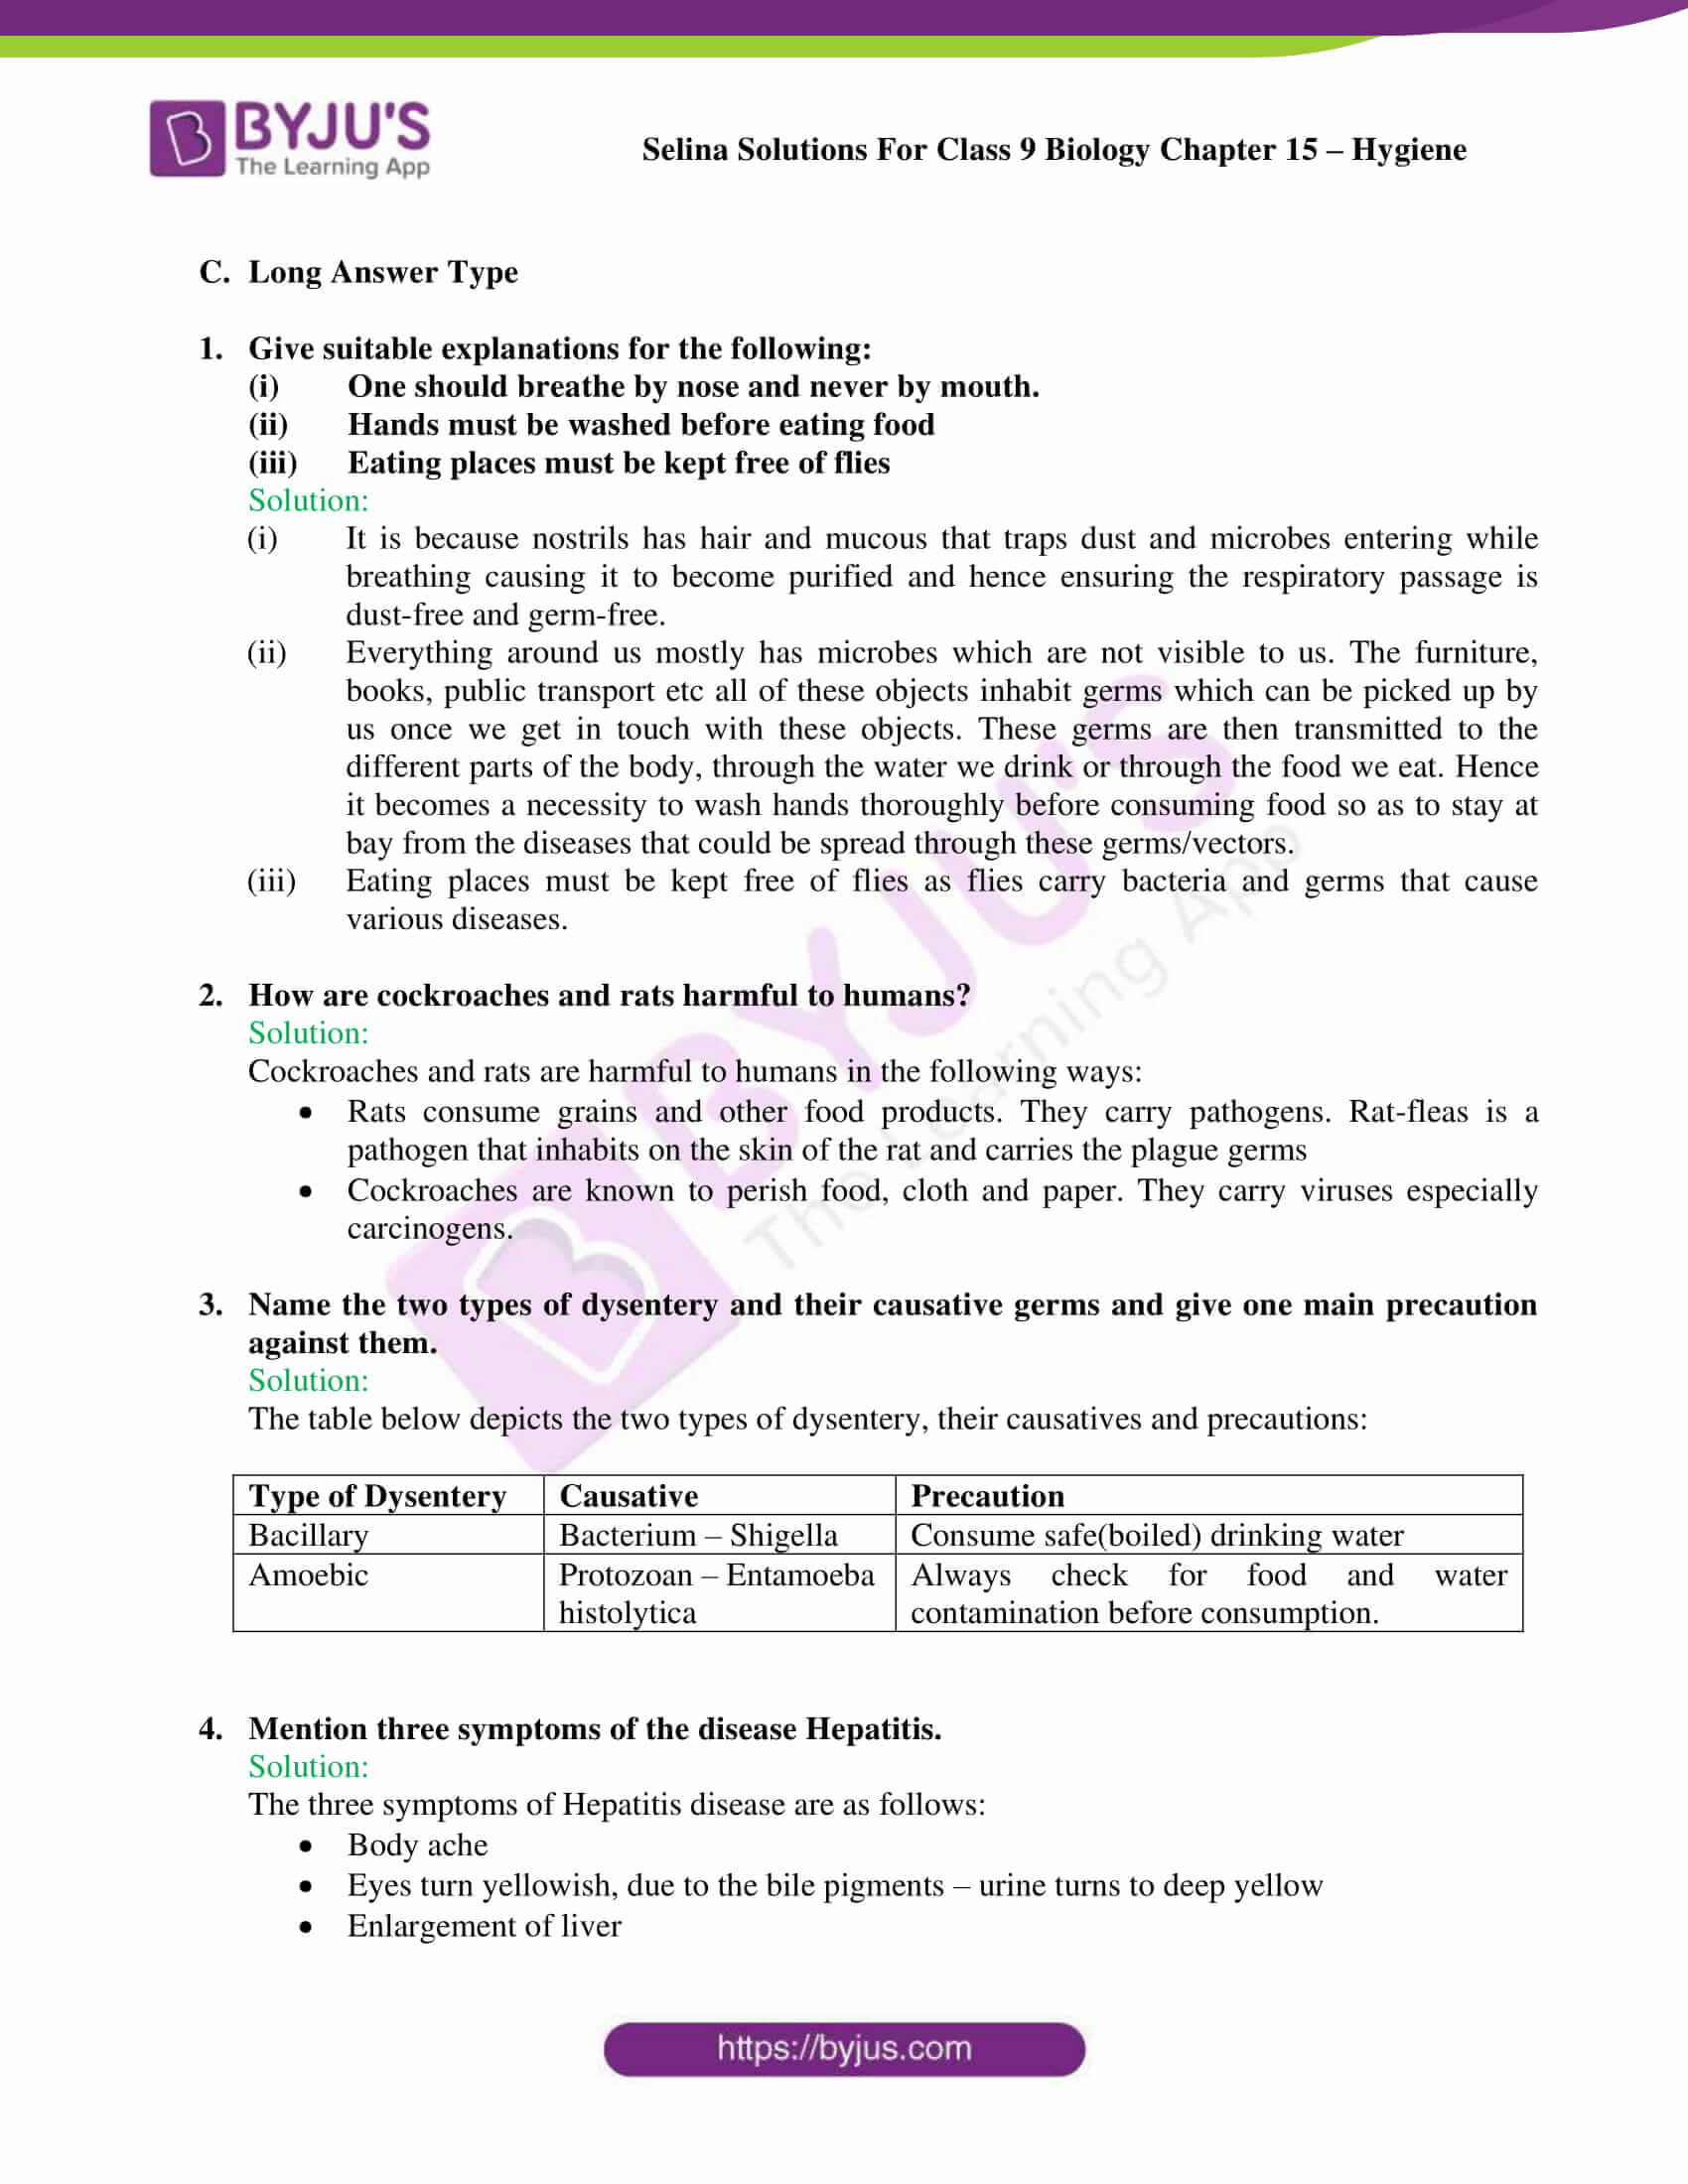 Selina Solutions Class 9 Biology Chapter 15 part 7